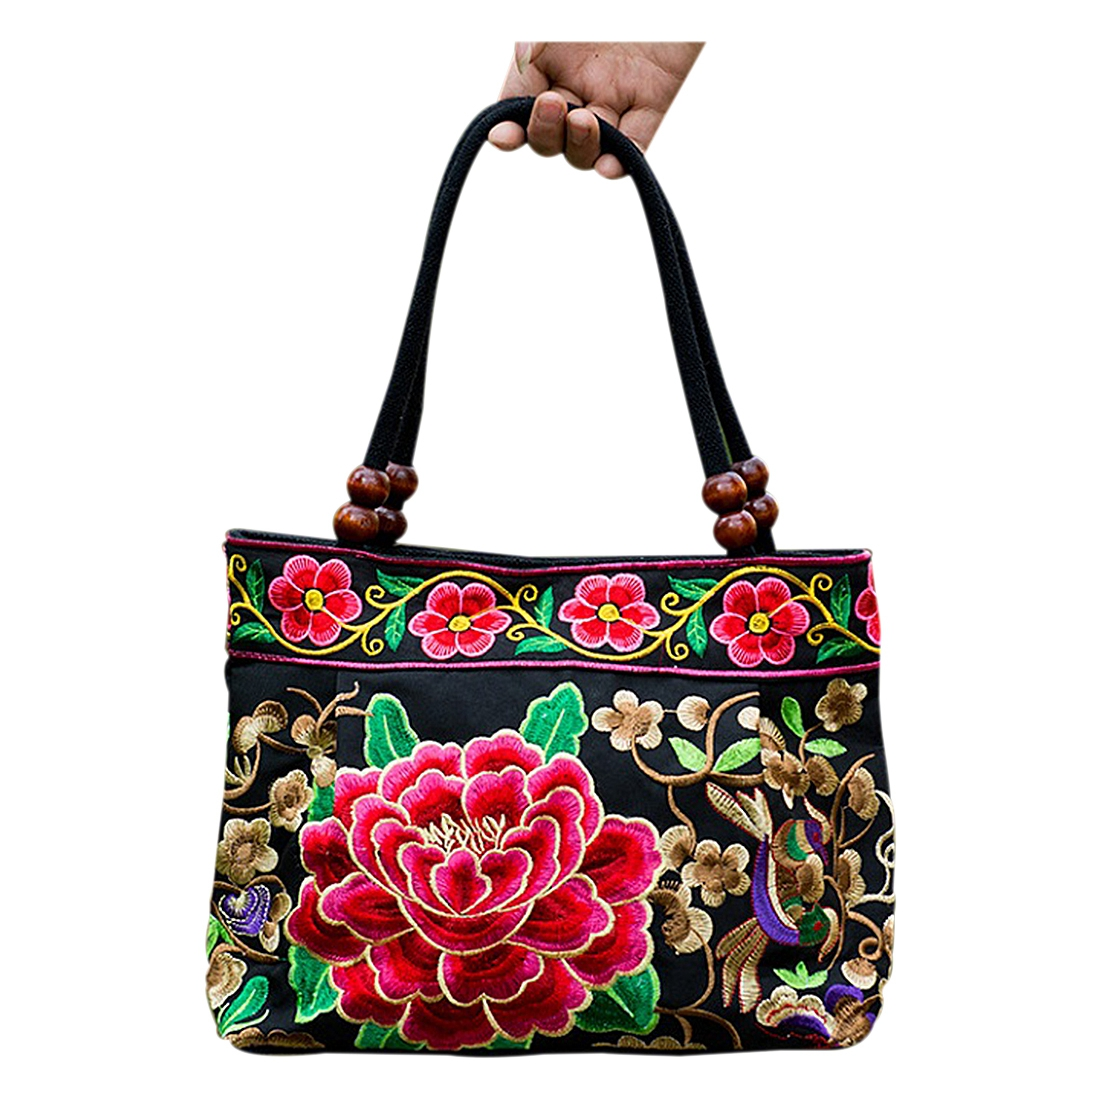 AFBC National Chinese Style Bags Embroidery Flowers Handbags Ethnic Canvas Handmade Tote Women's Handbags Sac A Dos Femme